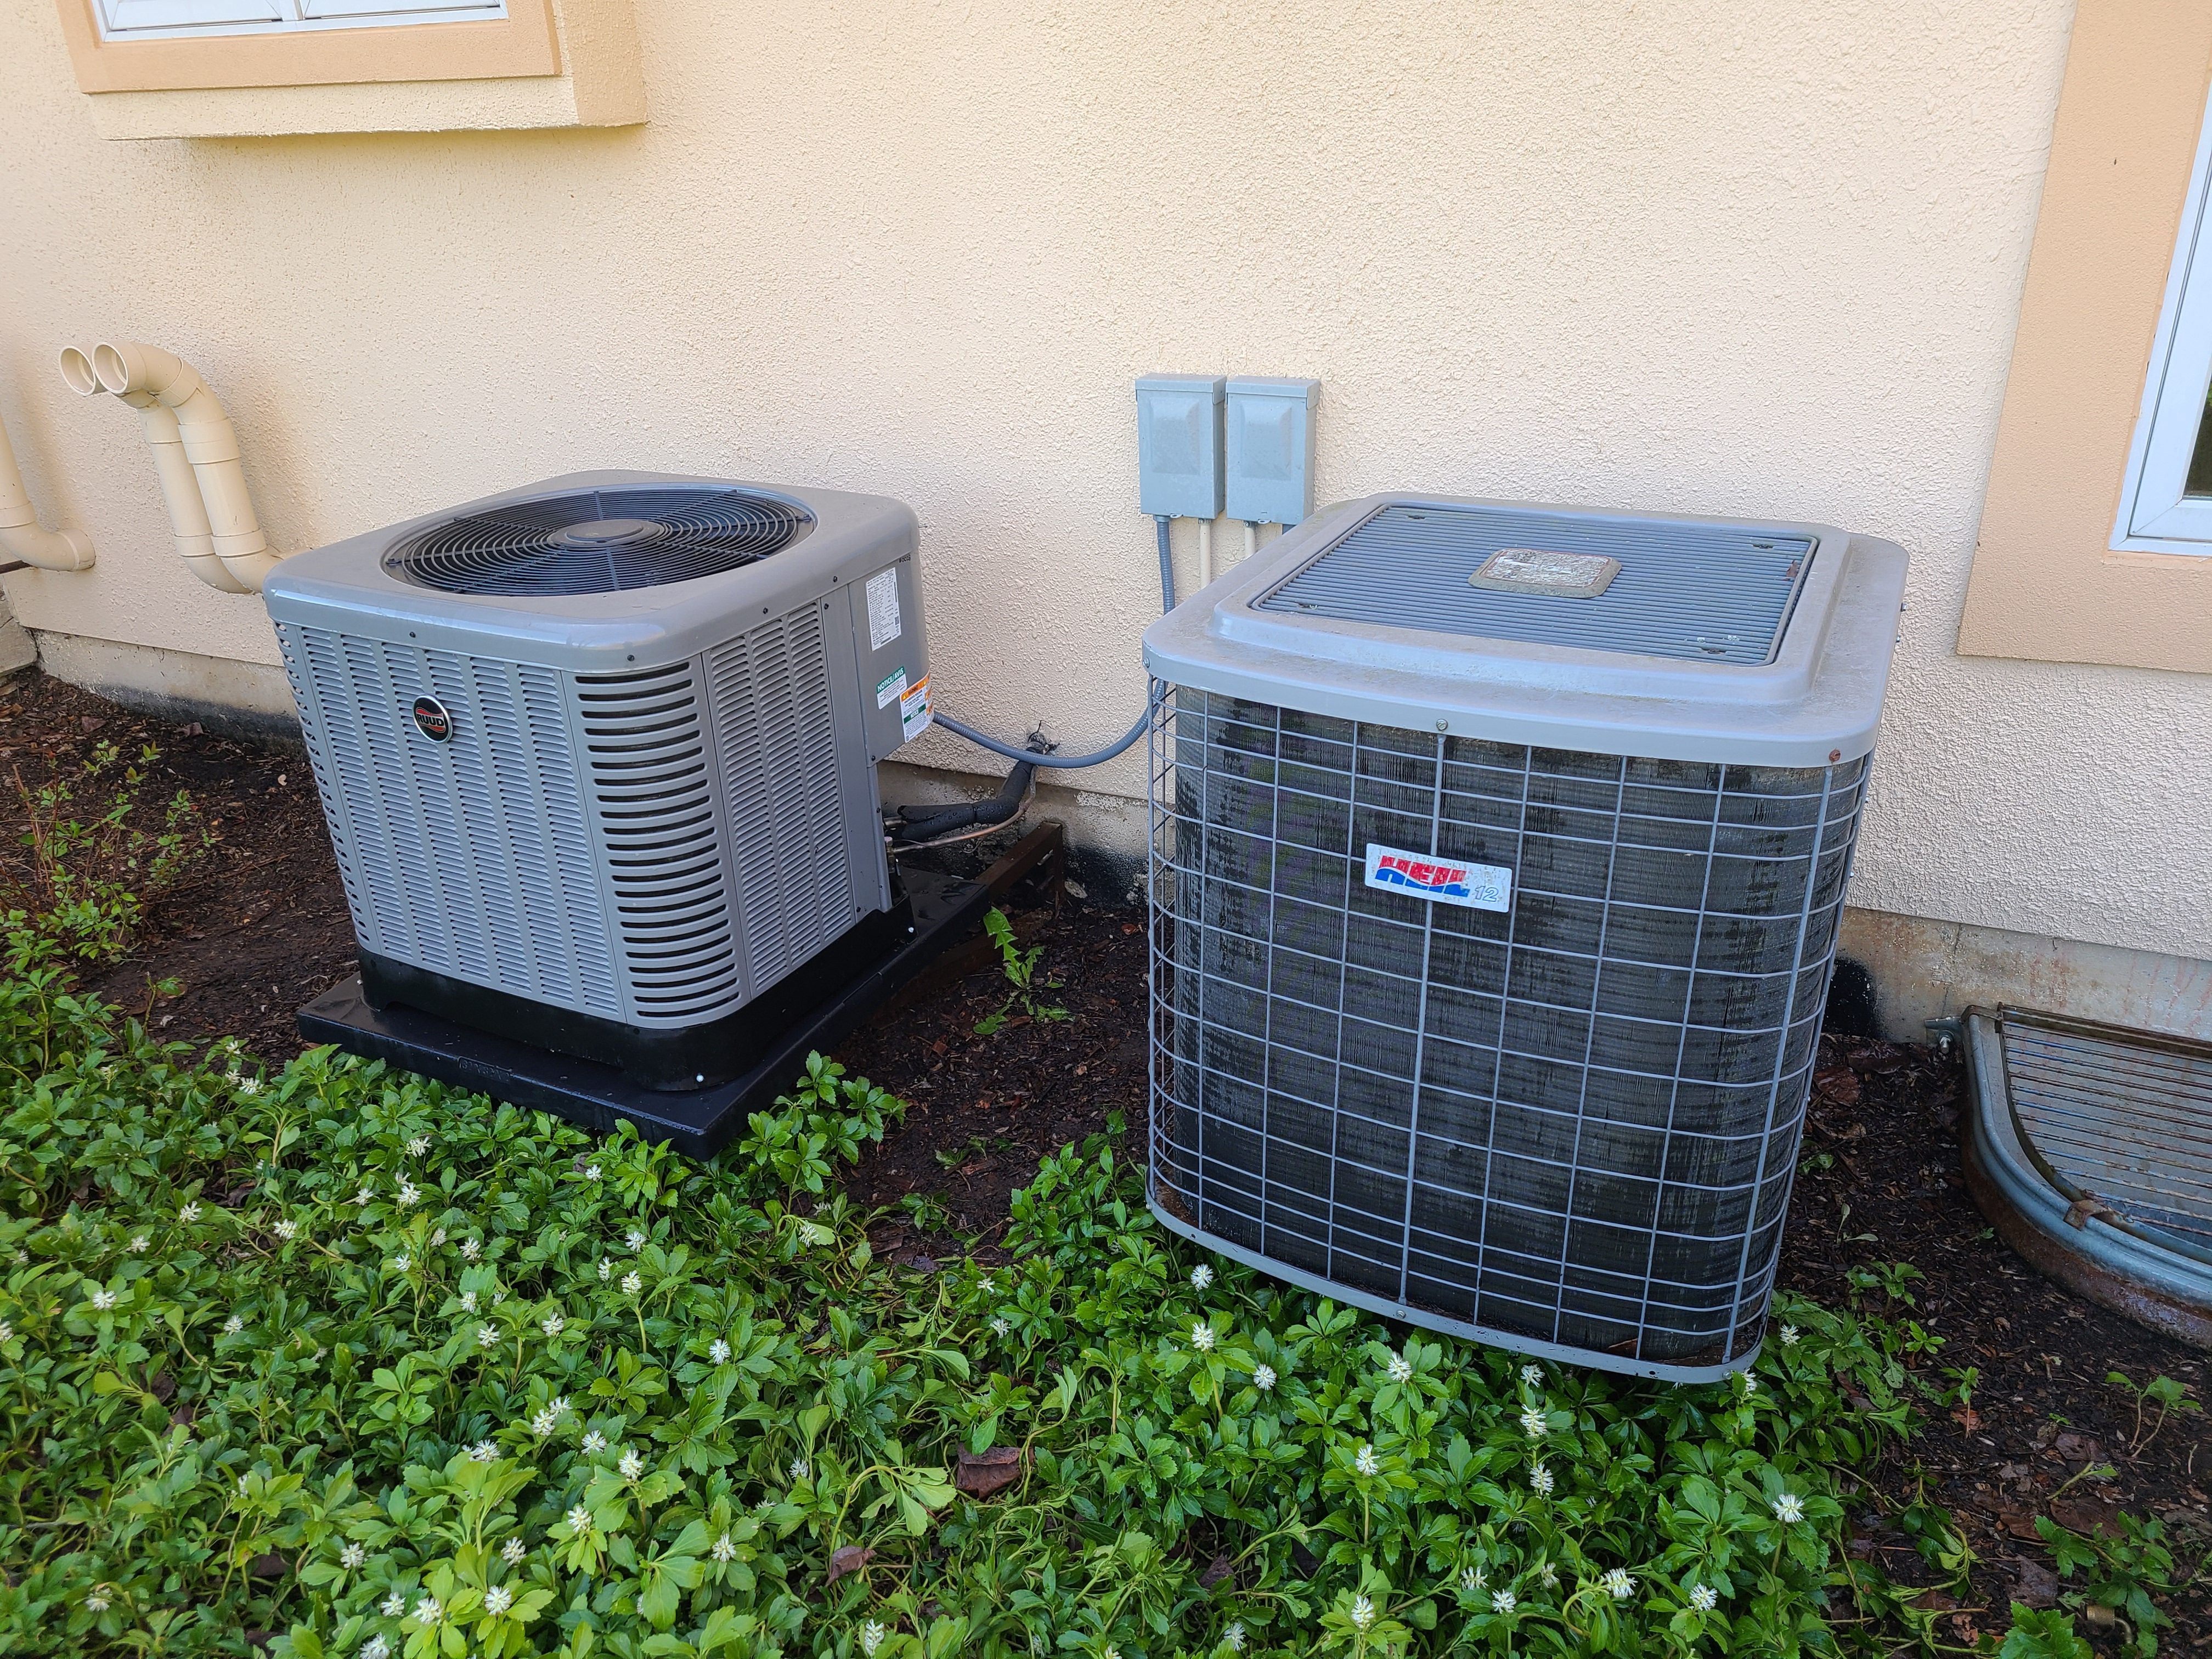 Performed routine maintenance on a RUUD and HEIL 12 system. Checked temperatures, pressures, volts, amperage and microfarats. Washed the condenser coils for both units.